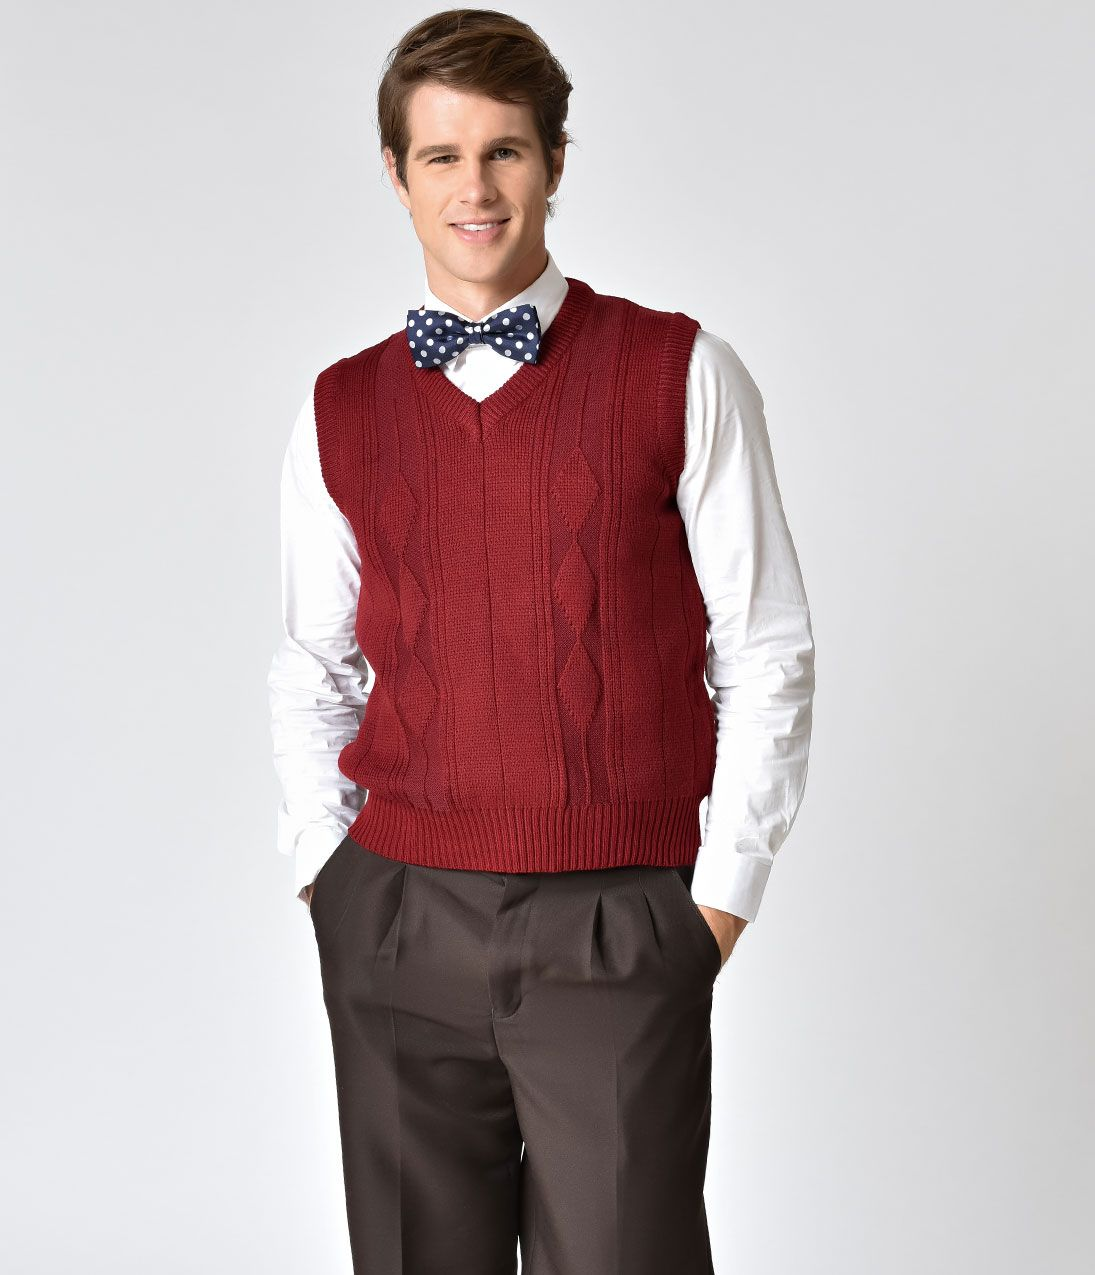 Men's Vintage Inspired Vests- 1920s, 1930s, 1940s, 1950s | Men's ...